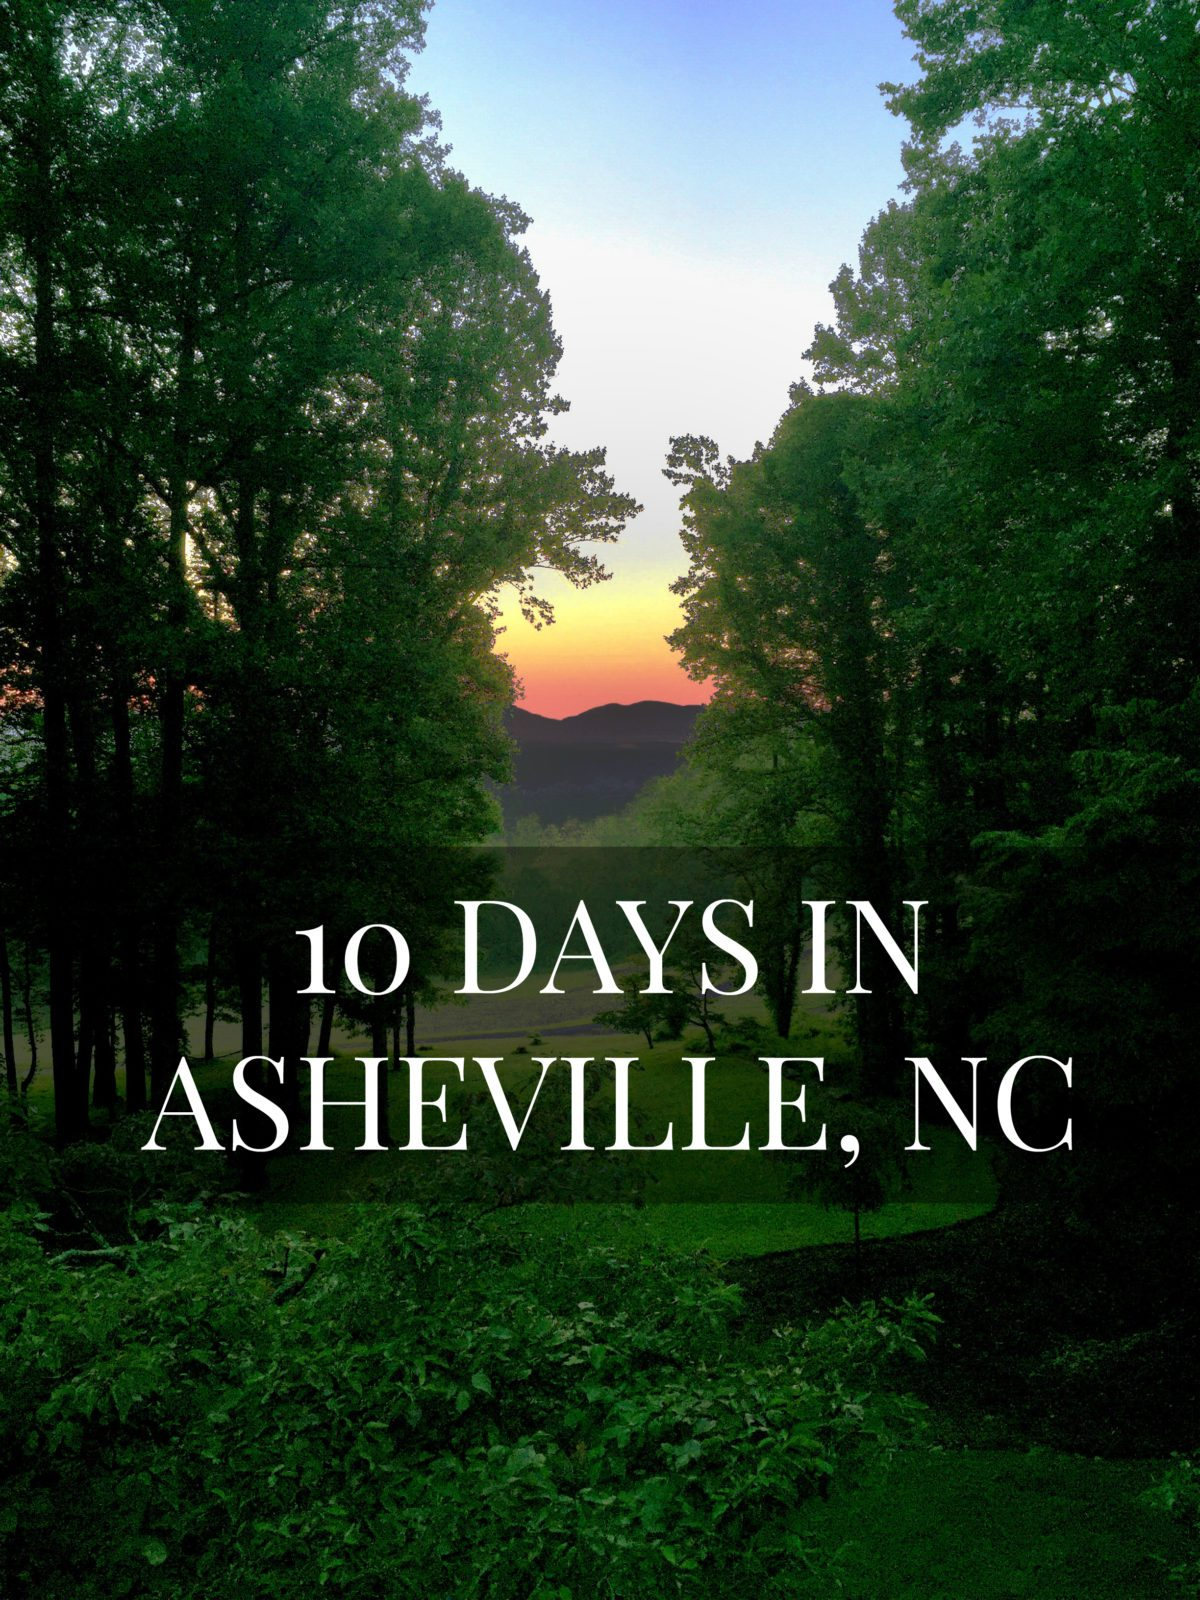 I share a quick recap of our 10 days in Asheville, North Carolina where we visited New Belgium Brewery, Green Man Brewery, hike Dupont Forrest, tried Wicked Weed Brewery and ate at French Broad Chocolate. // www.elletalk.com